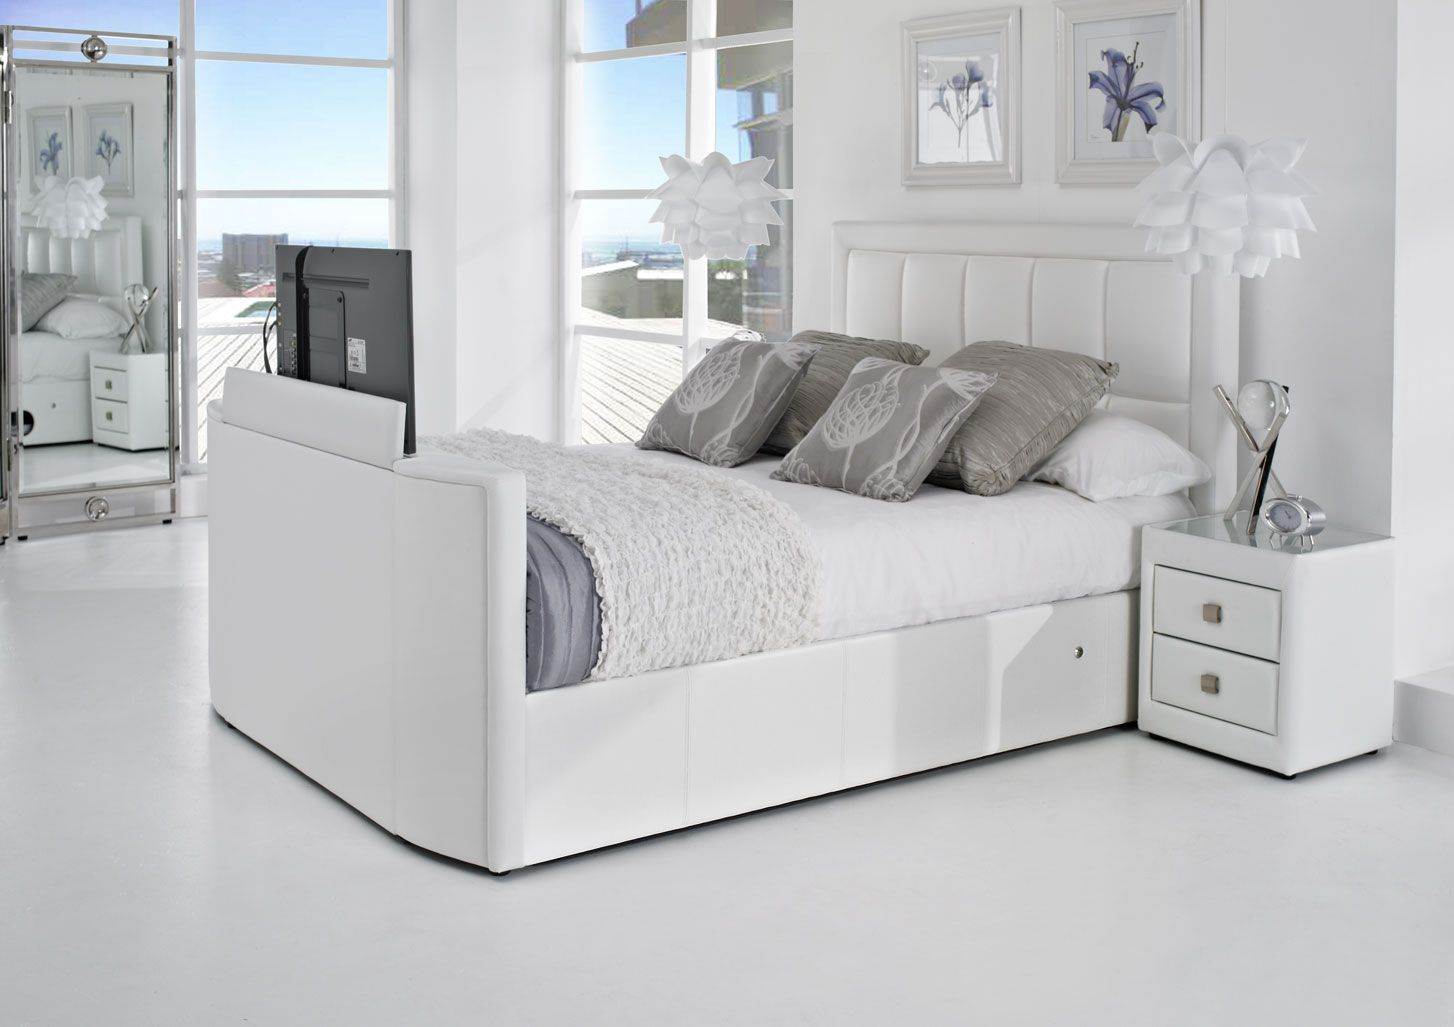 The Azure is available in white, brown and black. Bedside